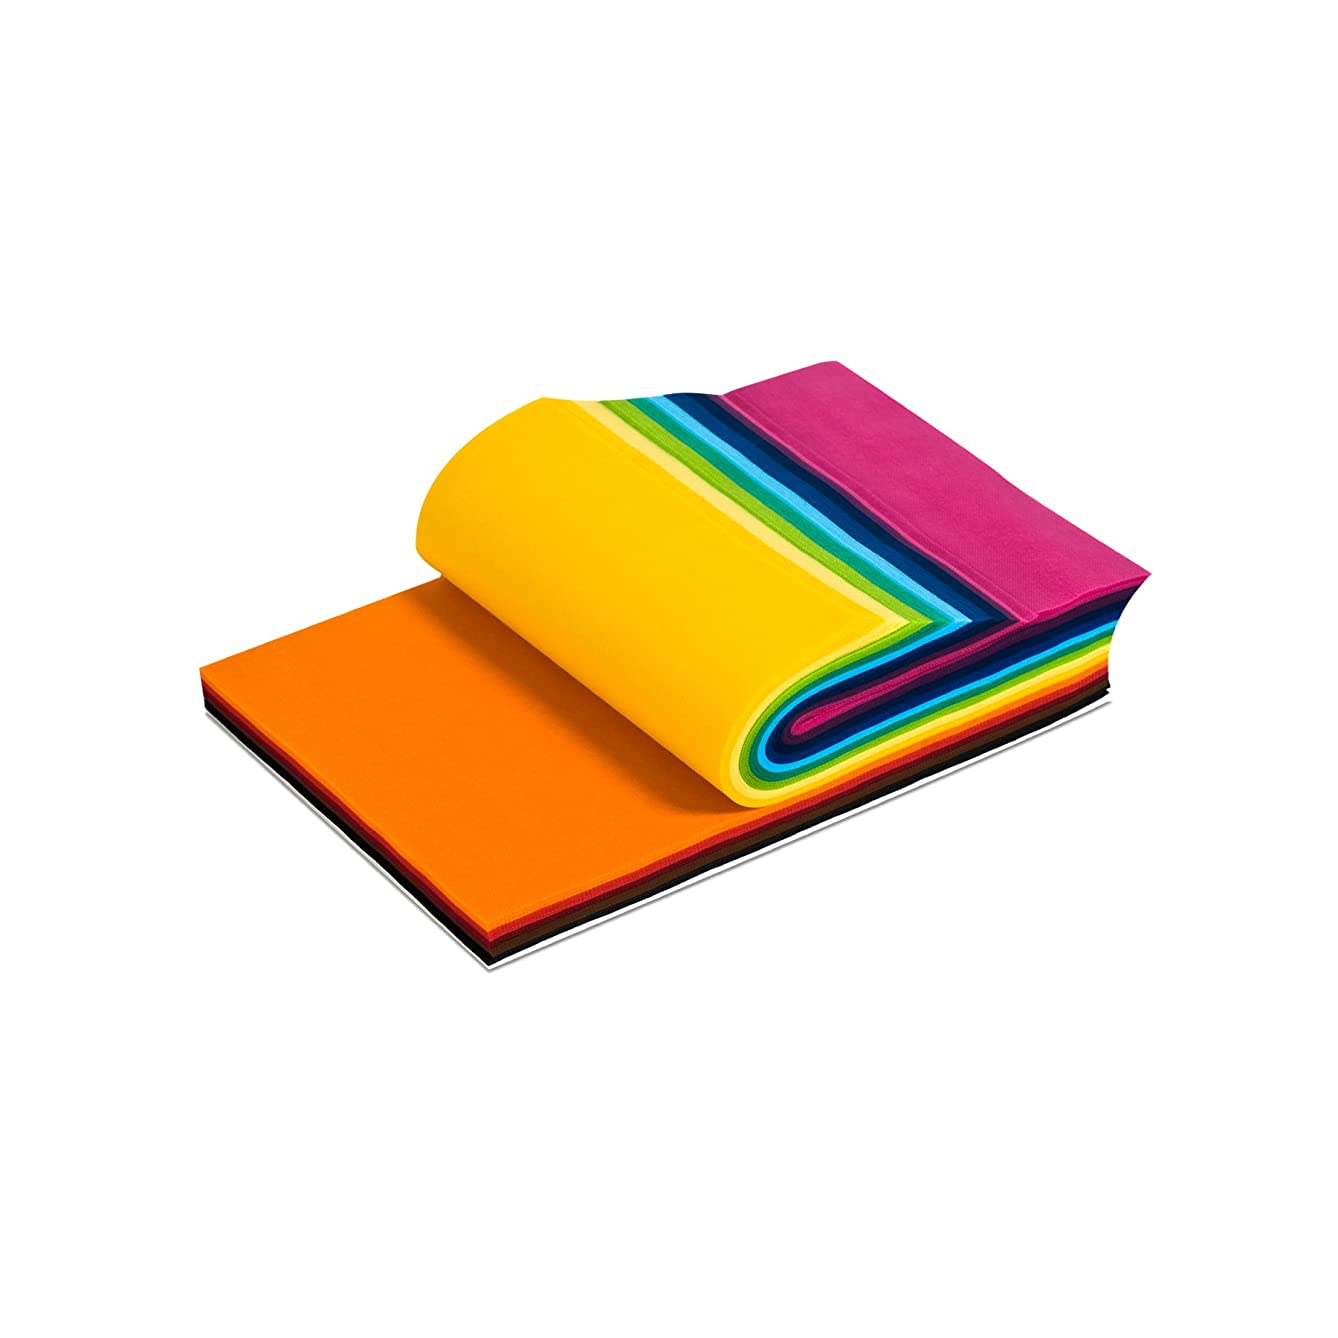 Smart-Fab Fabric Weatherproof Cut Sheet, 9 x 12 Inches, Assorted Color, Pack of 270